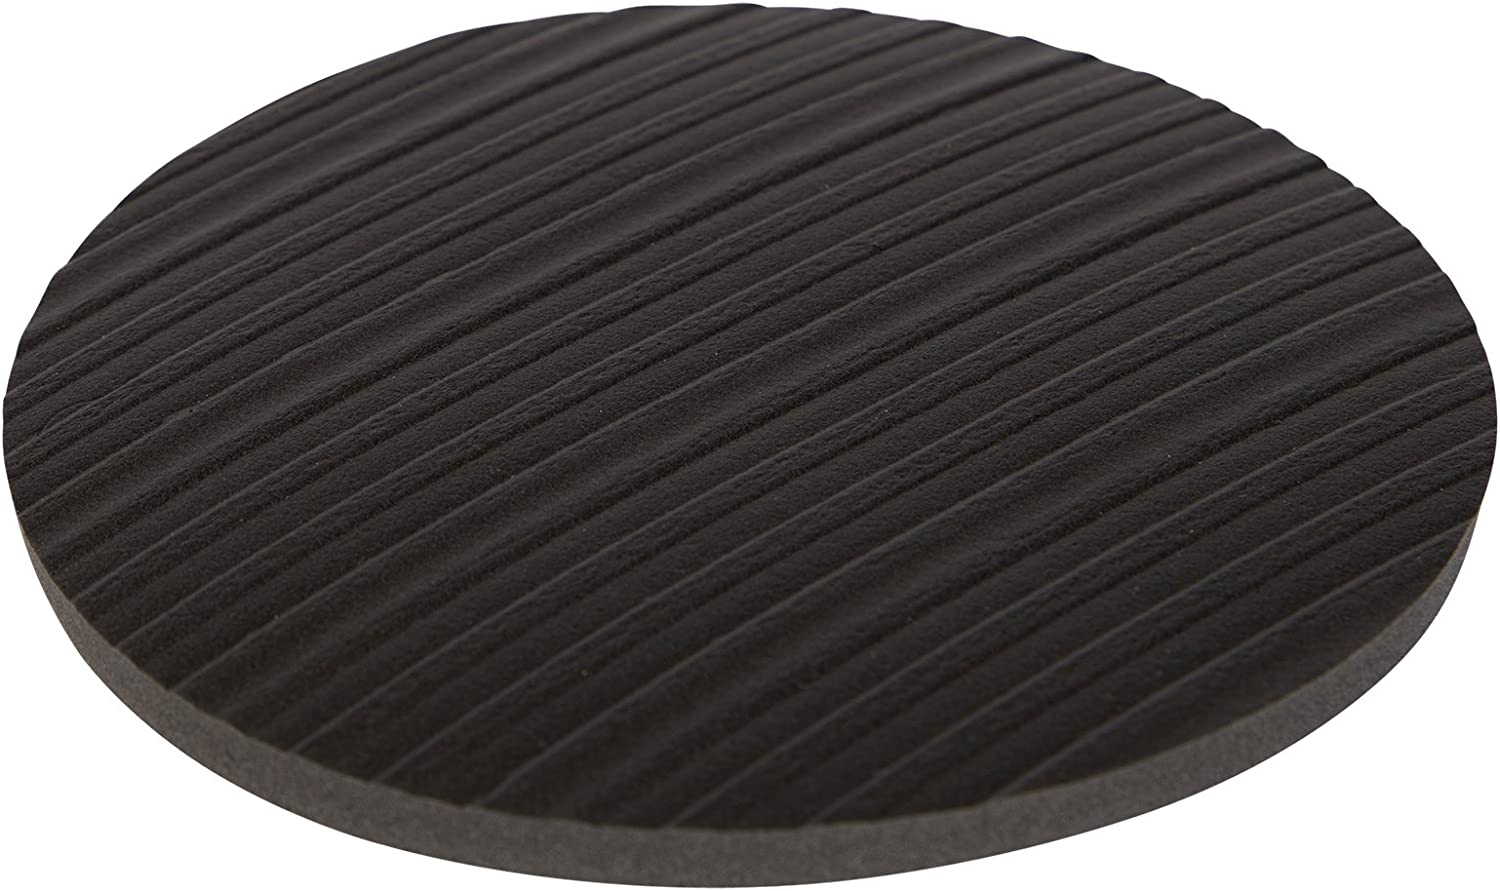 Stay! Furniture Pads, Round Furniture Grippers, Gripper Pads, Protect Your Floor   Works on Hardwood Floors and Carpet, Anti-Slip   Round Black, Set of 4 (6 inch)